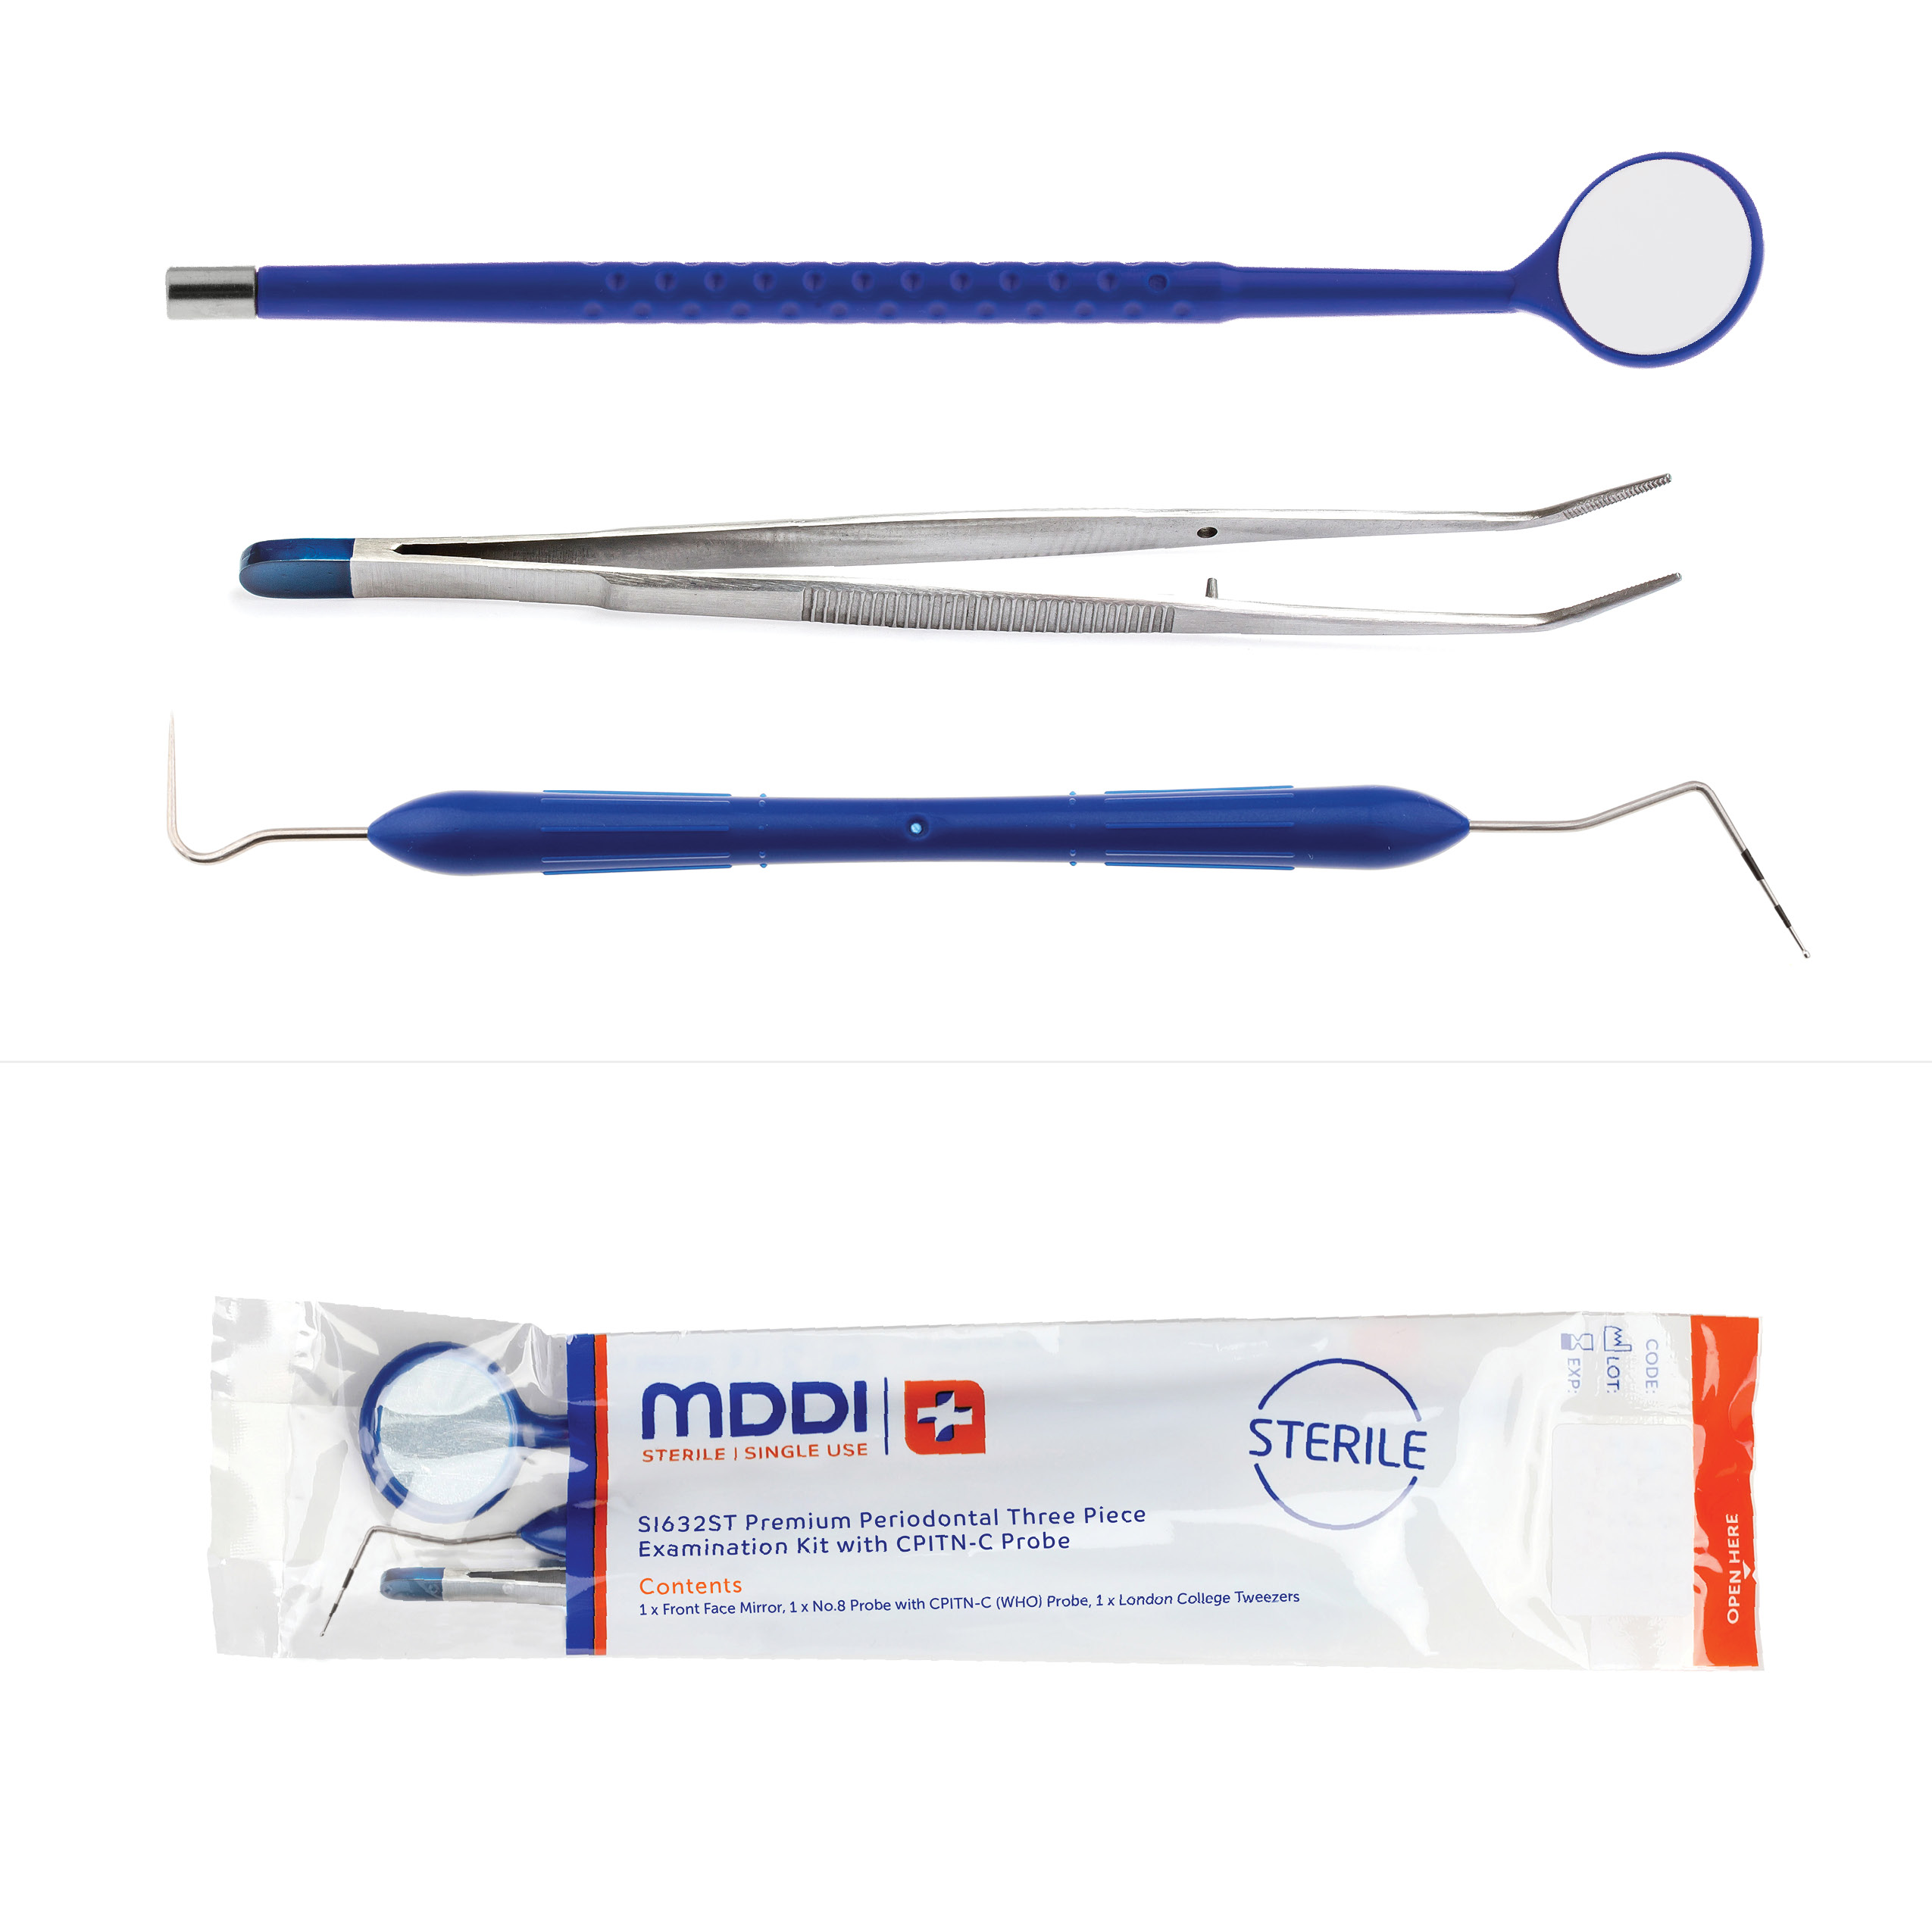 Premium Periodontal Three Piece Examination Kit with CPITN-C Probe